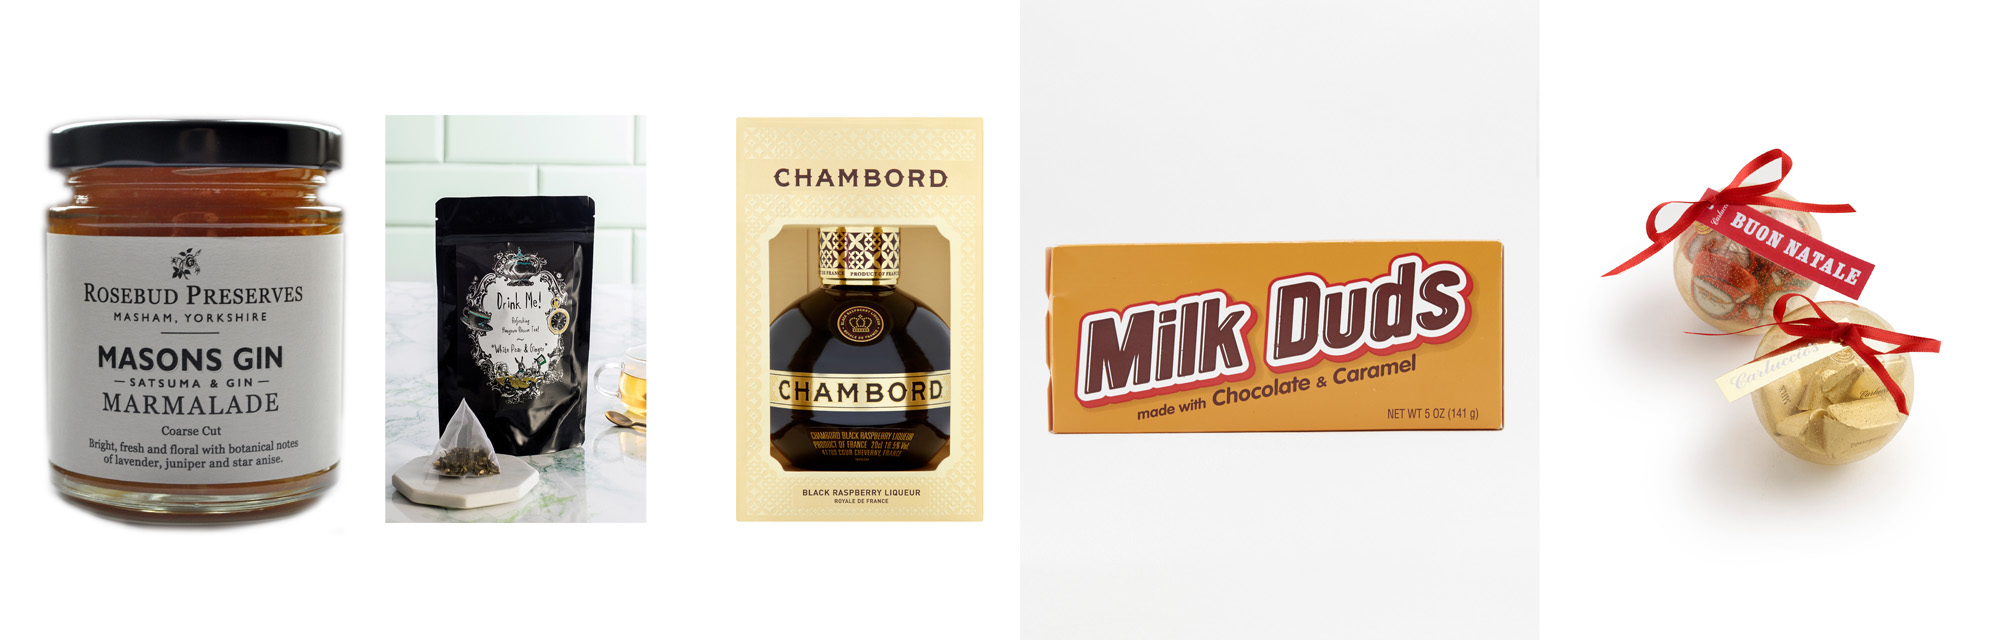 Food and drink goodie bag milk duds chocolate Chambord gin jam hangover rescue tea